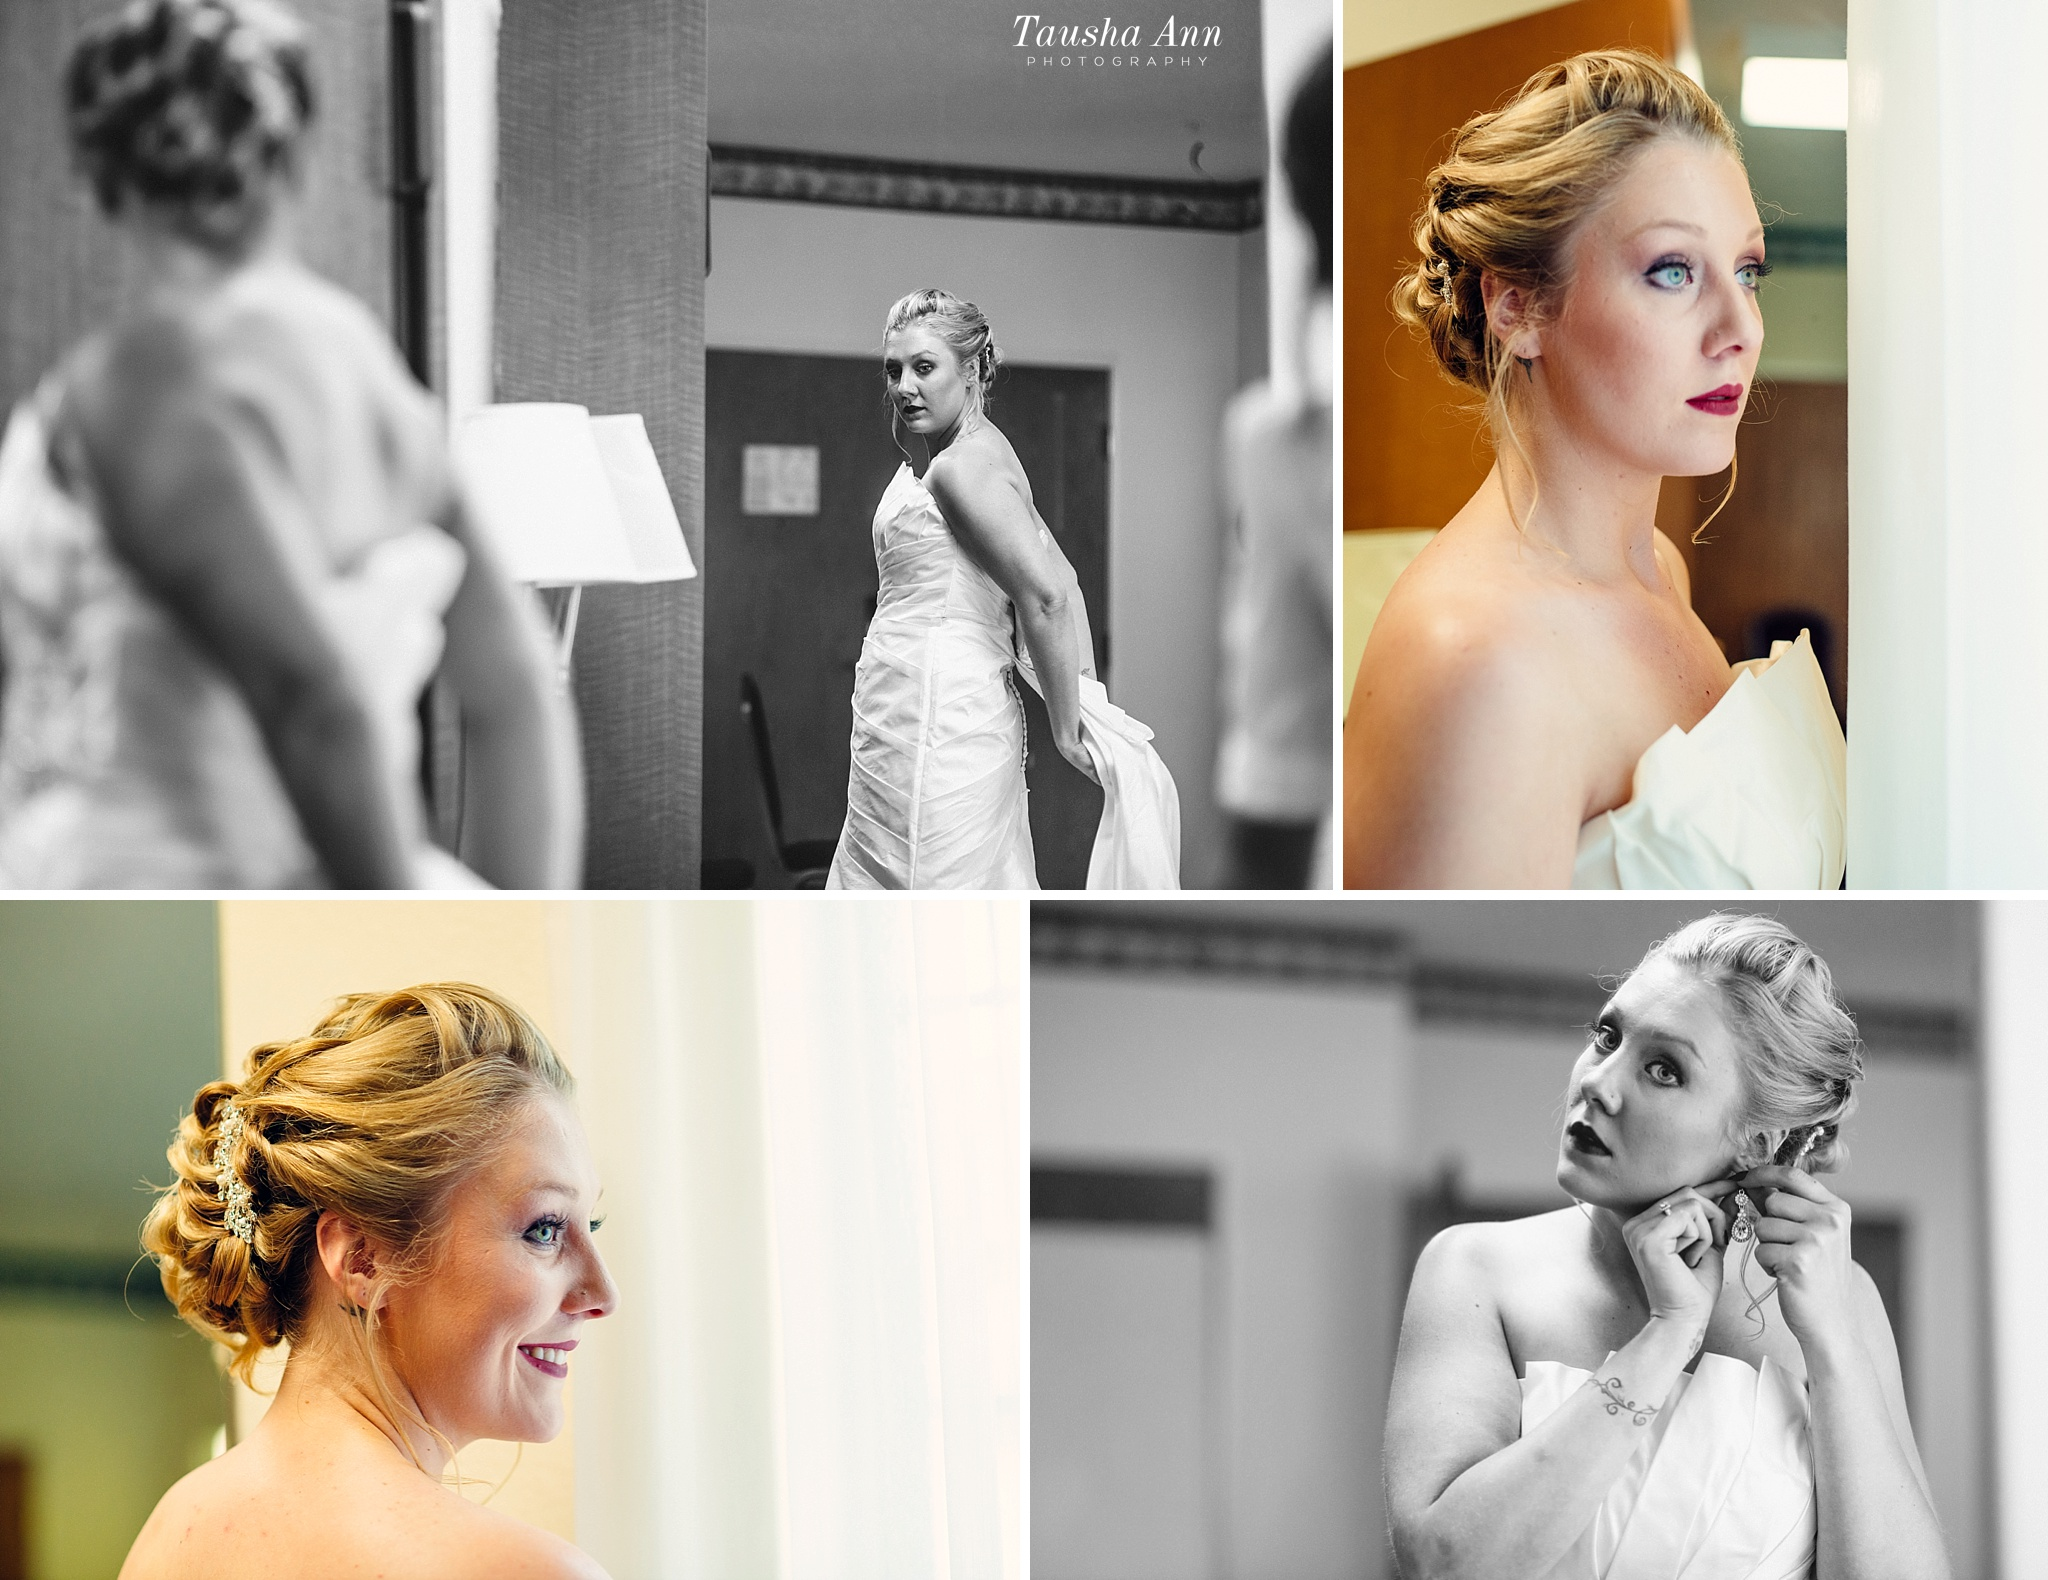 Final portraits of bride looking out window, looking in mirror and putting on earrings.